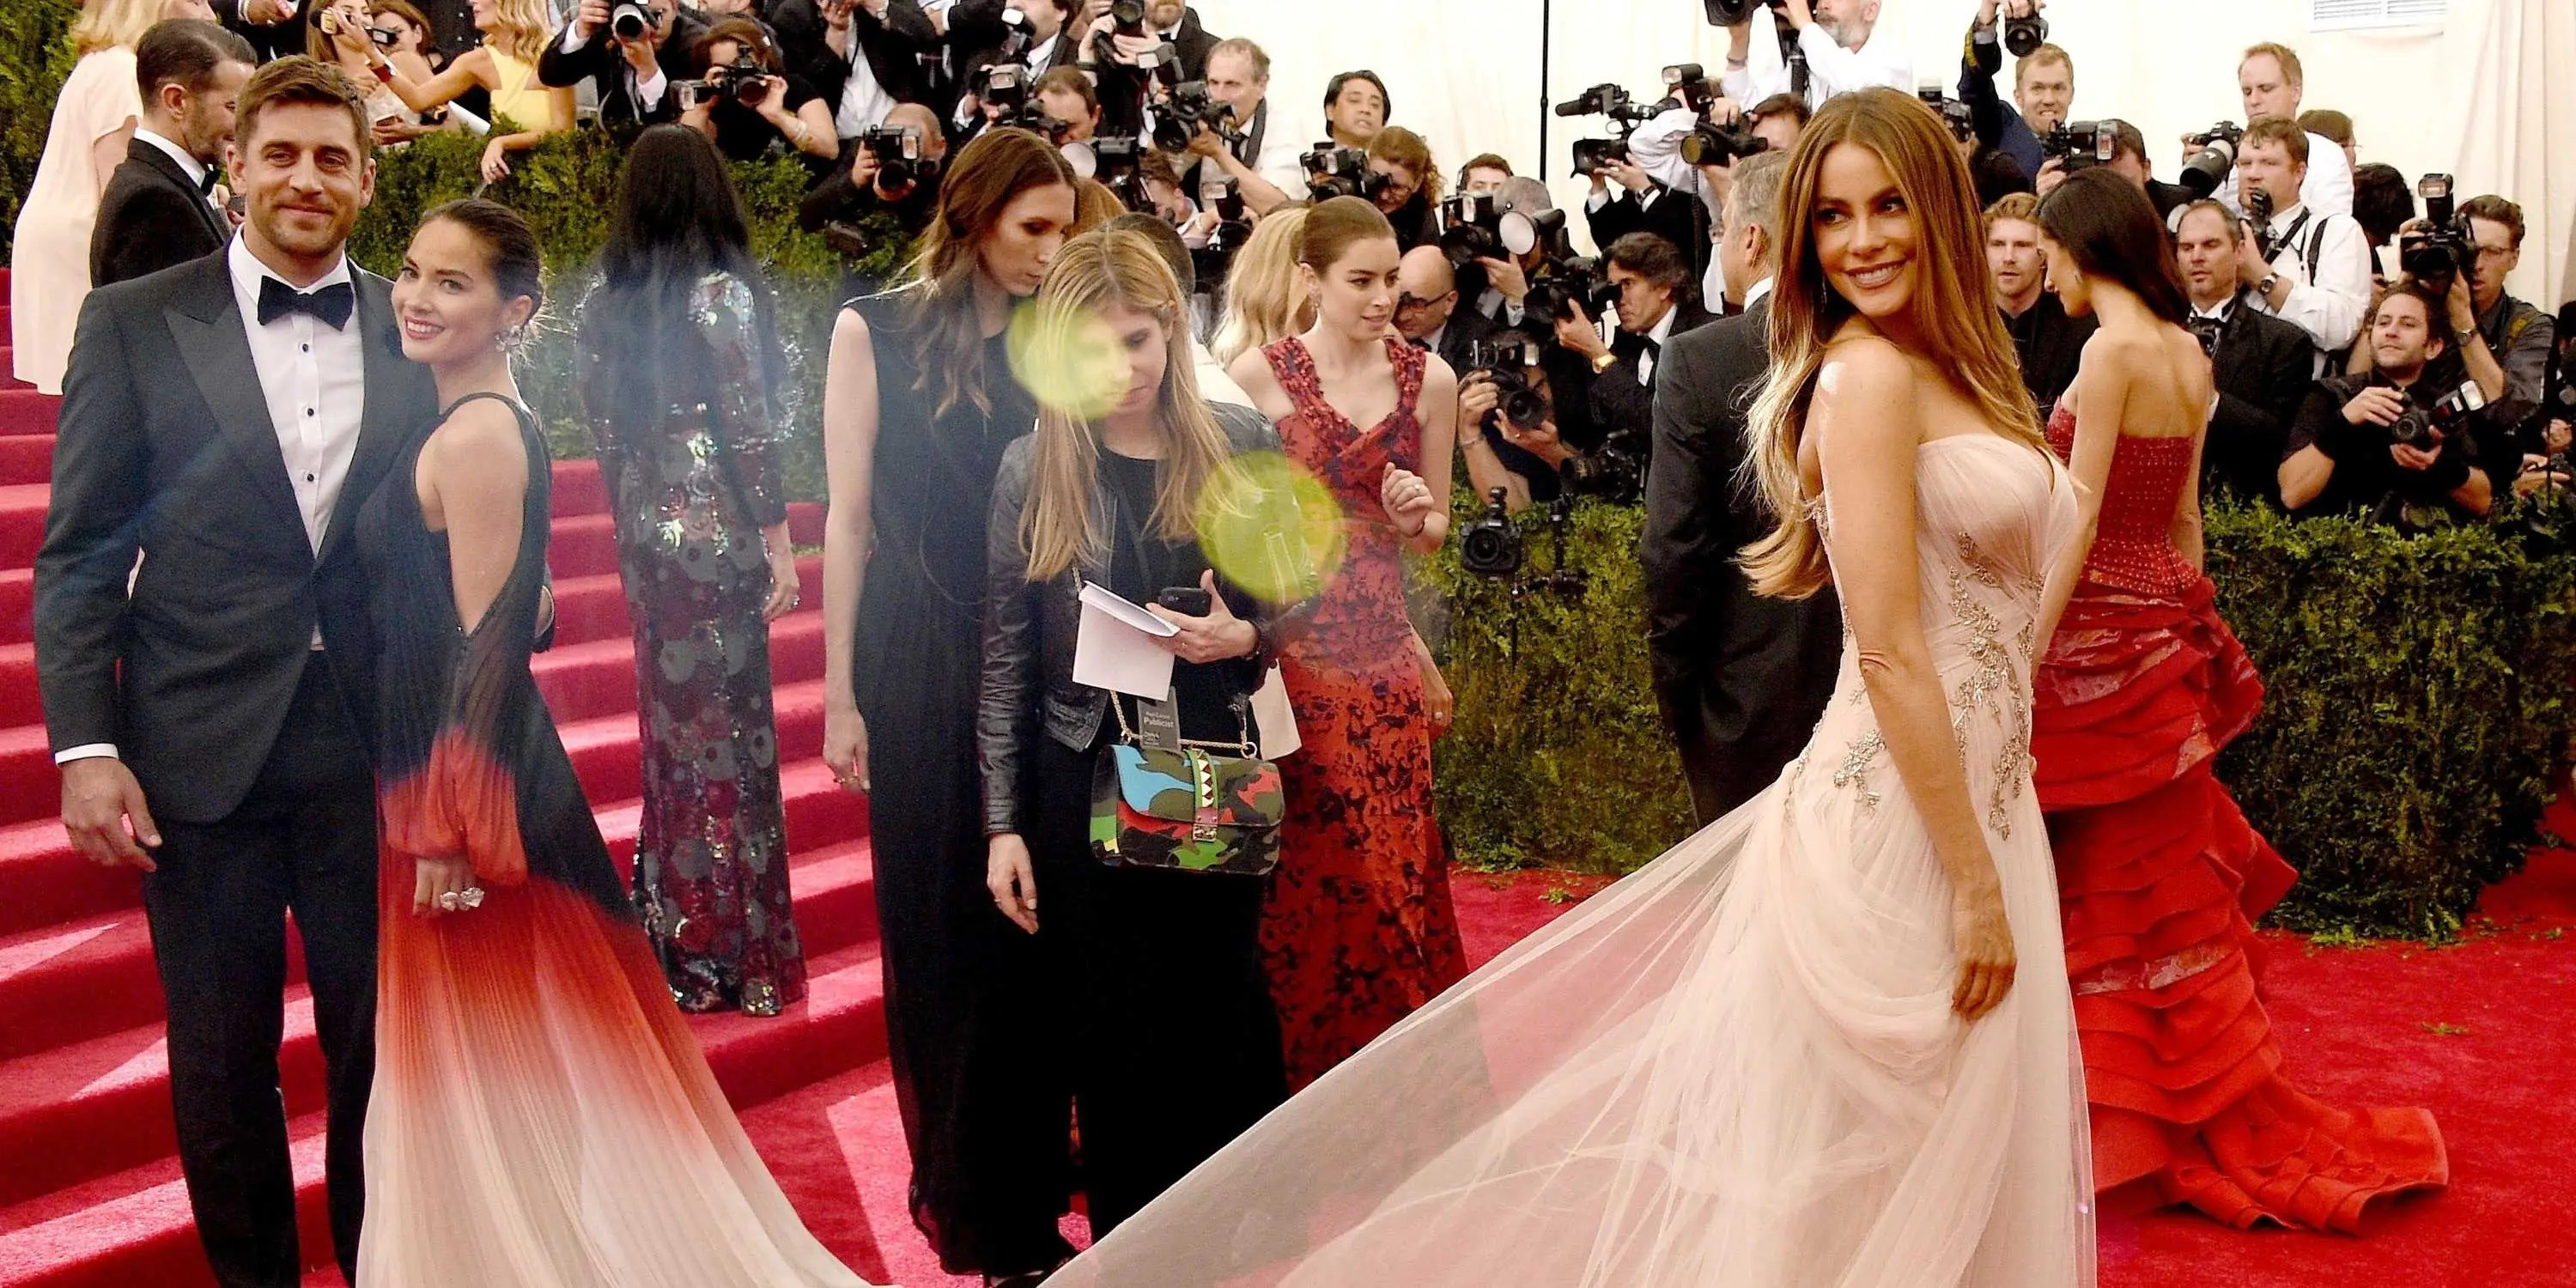 How Much Celebrities Are Paid To Wear Dresses On Red